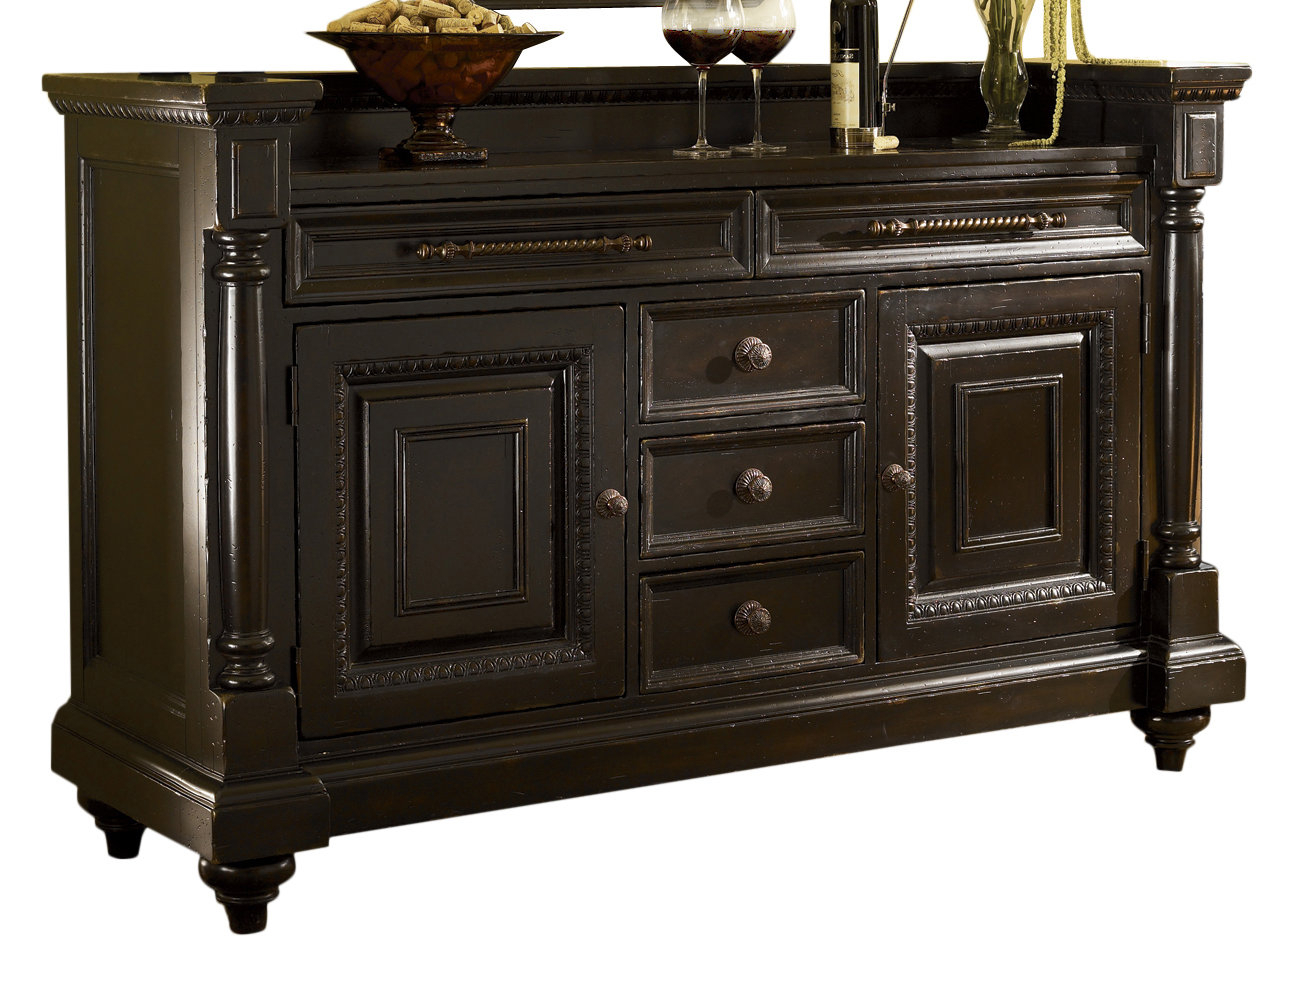 Solana Sideboards In 2019 Kingstown Maldive Sideboard (View 16 of 20)